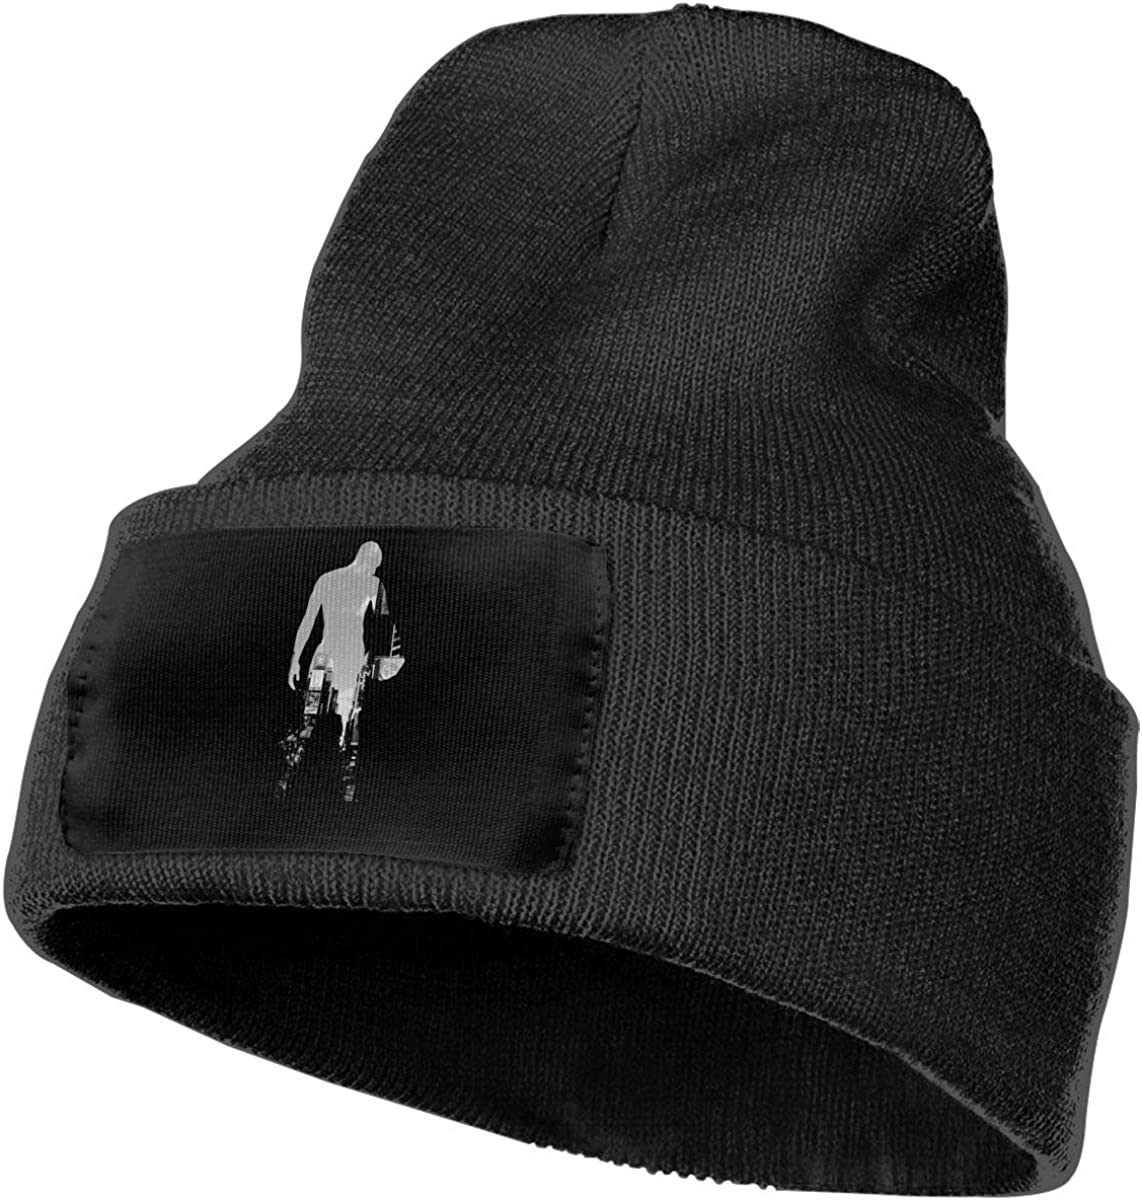 JimHappy Streetball Nation Hat for Men and Women Winter Warm Hats Knit Slouchy Thick Skull Cap